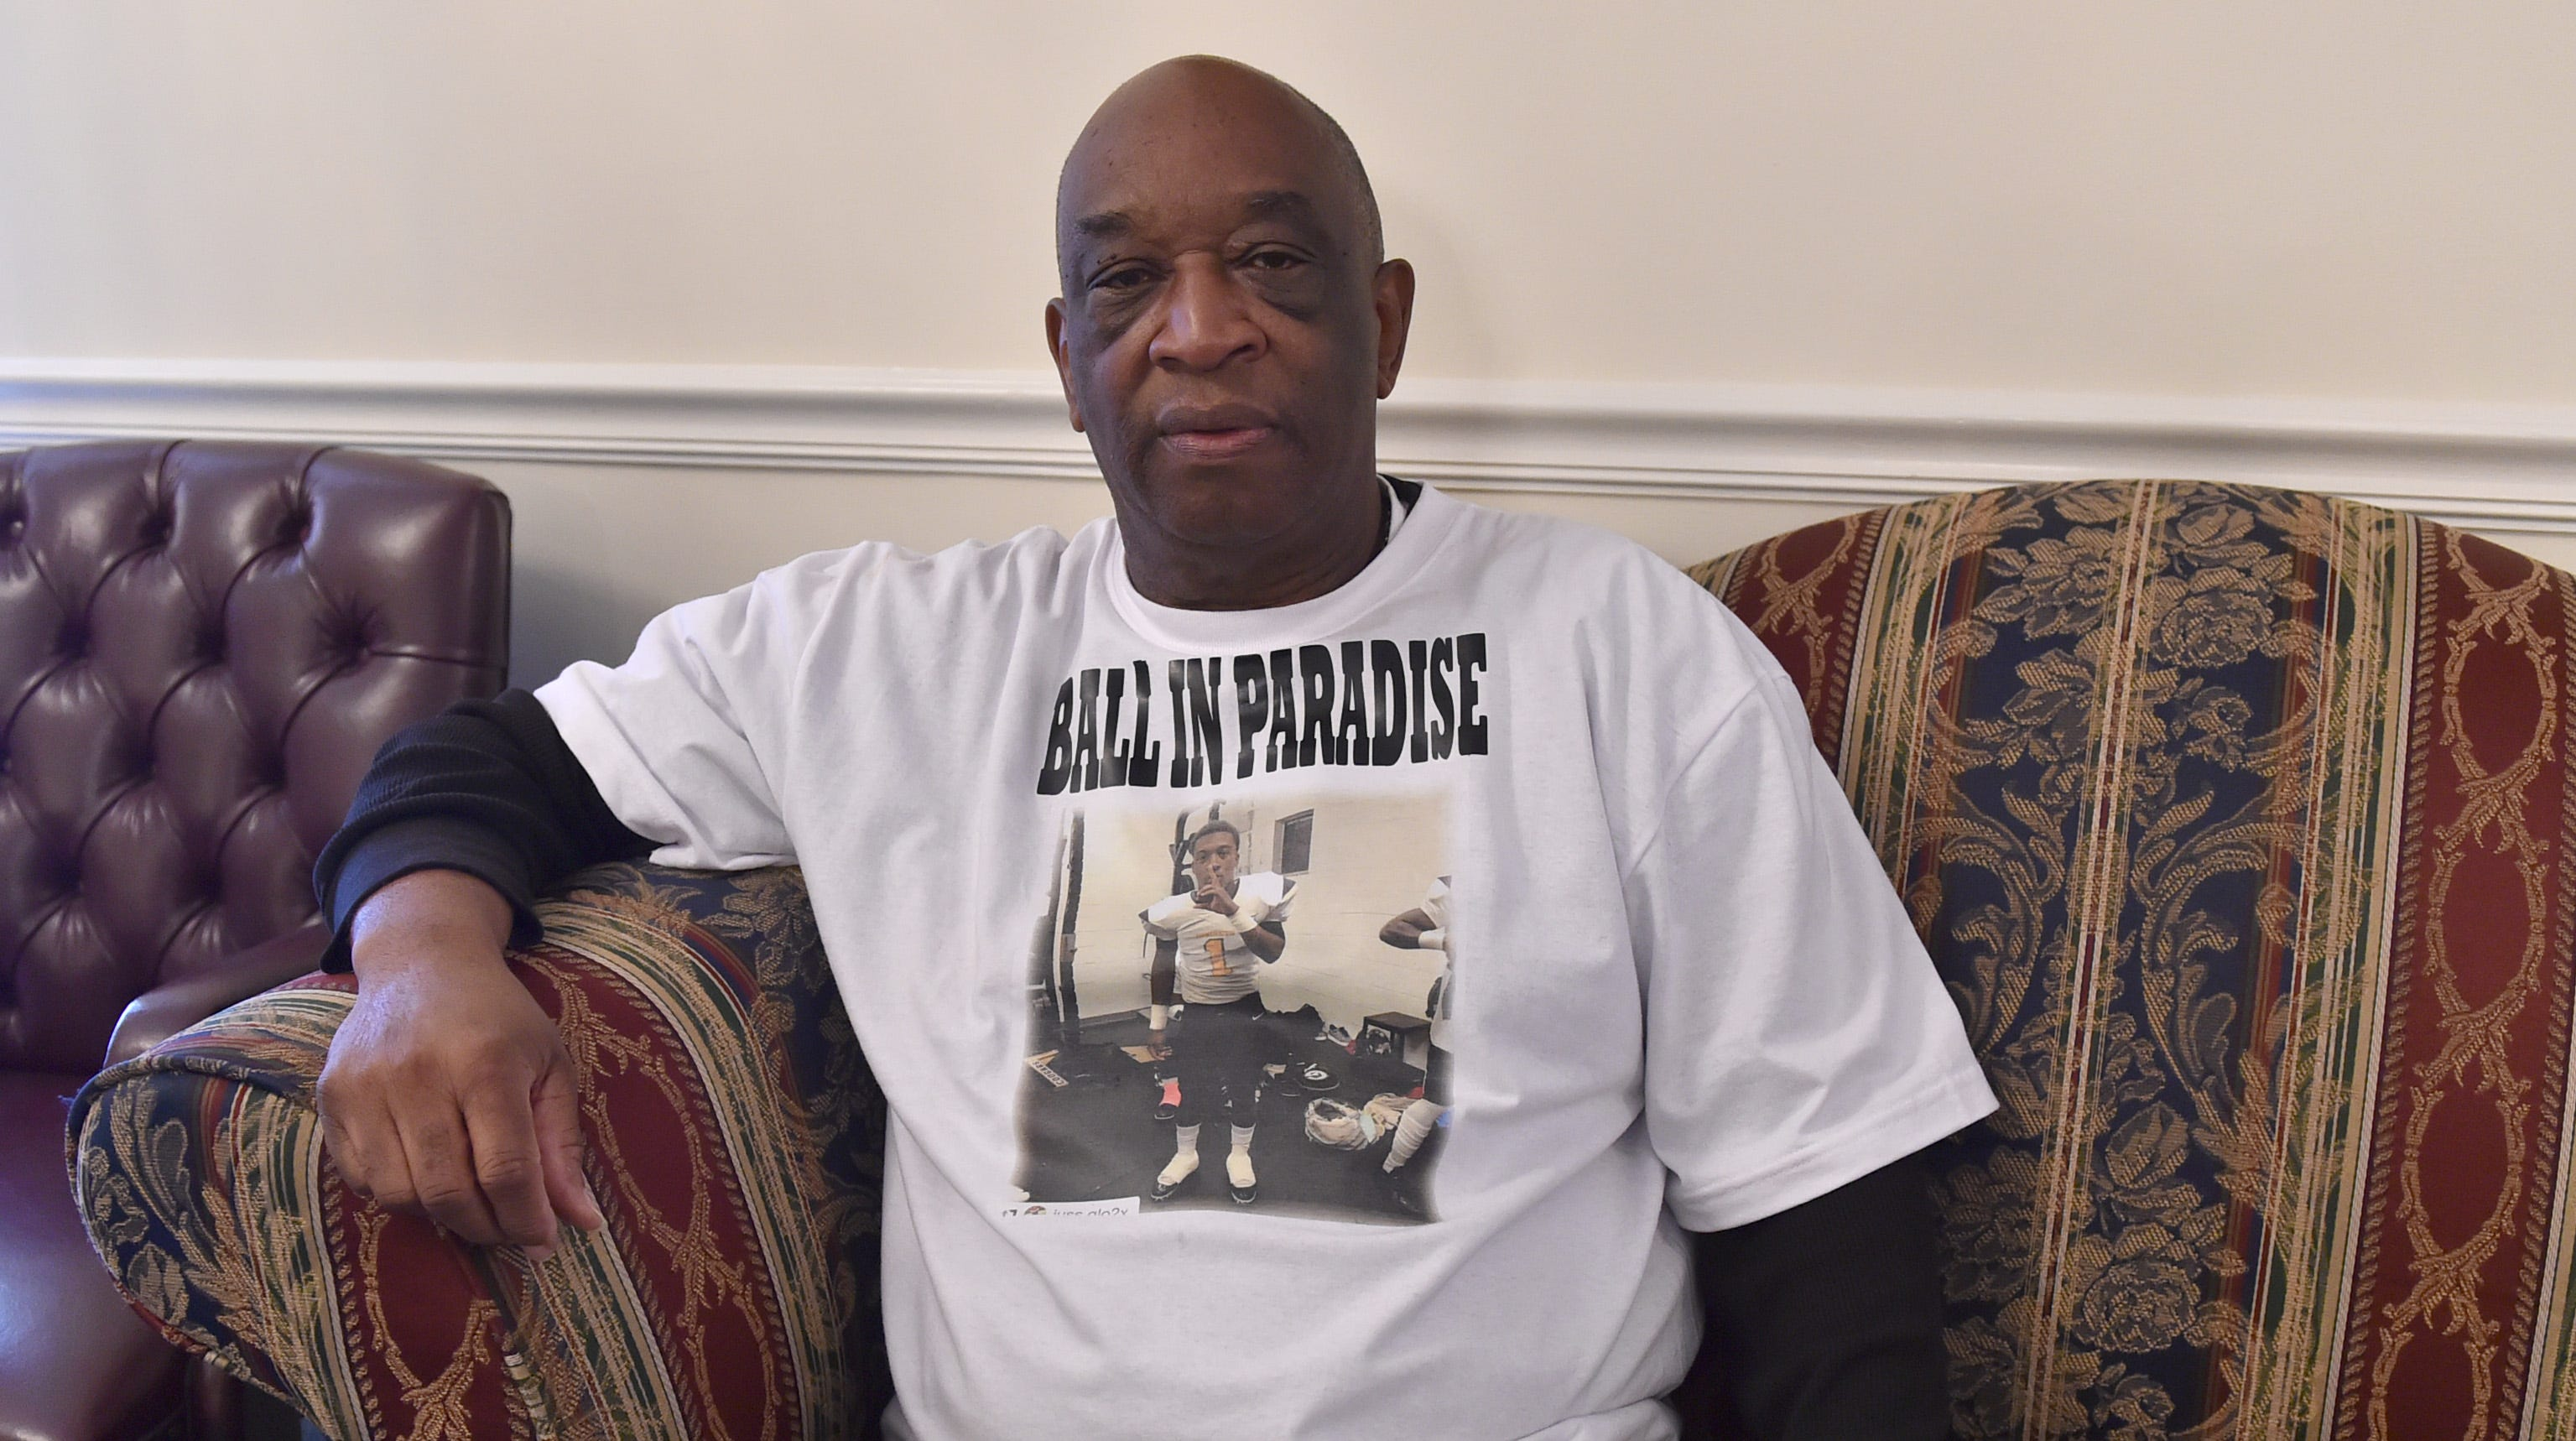 'The Lord had other plans.' Friends, family mourn loss of Jeremiah Williams